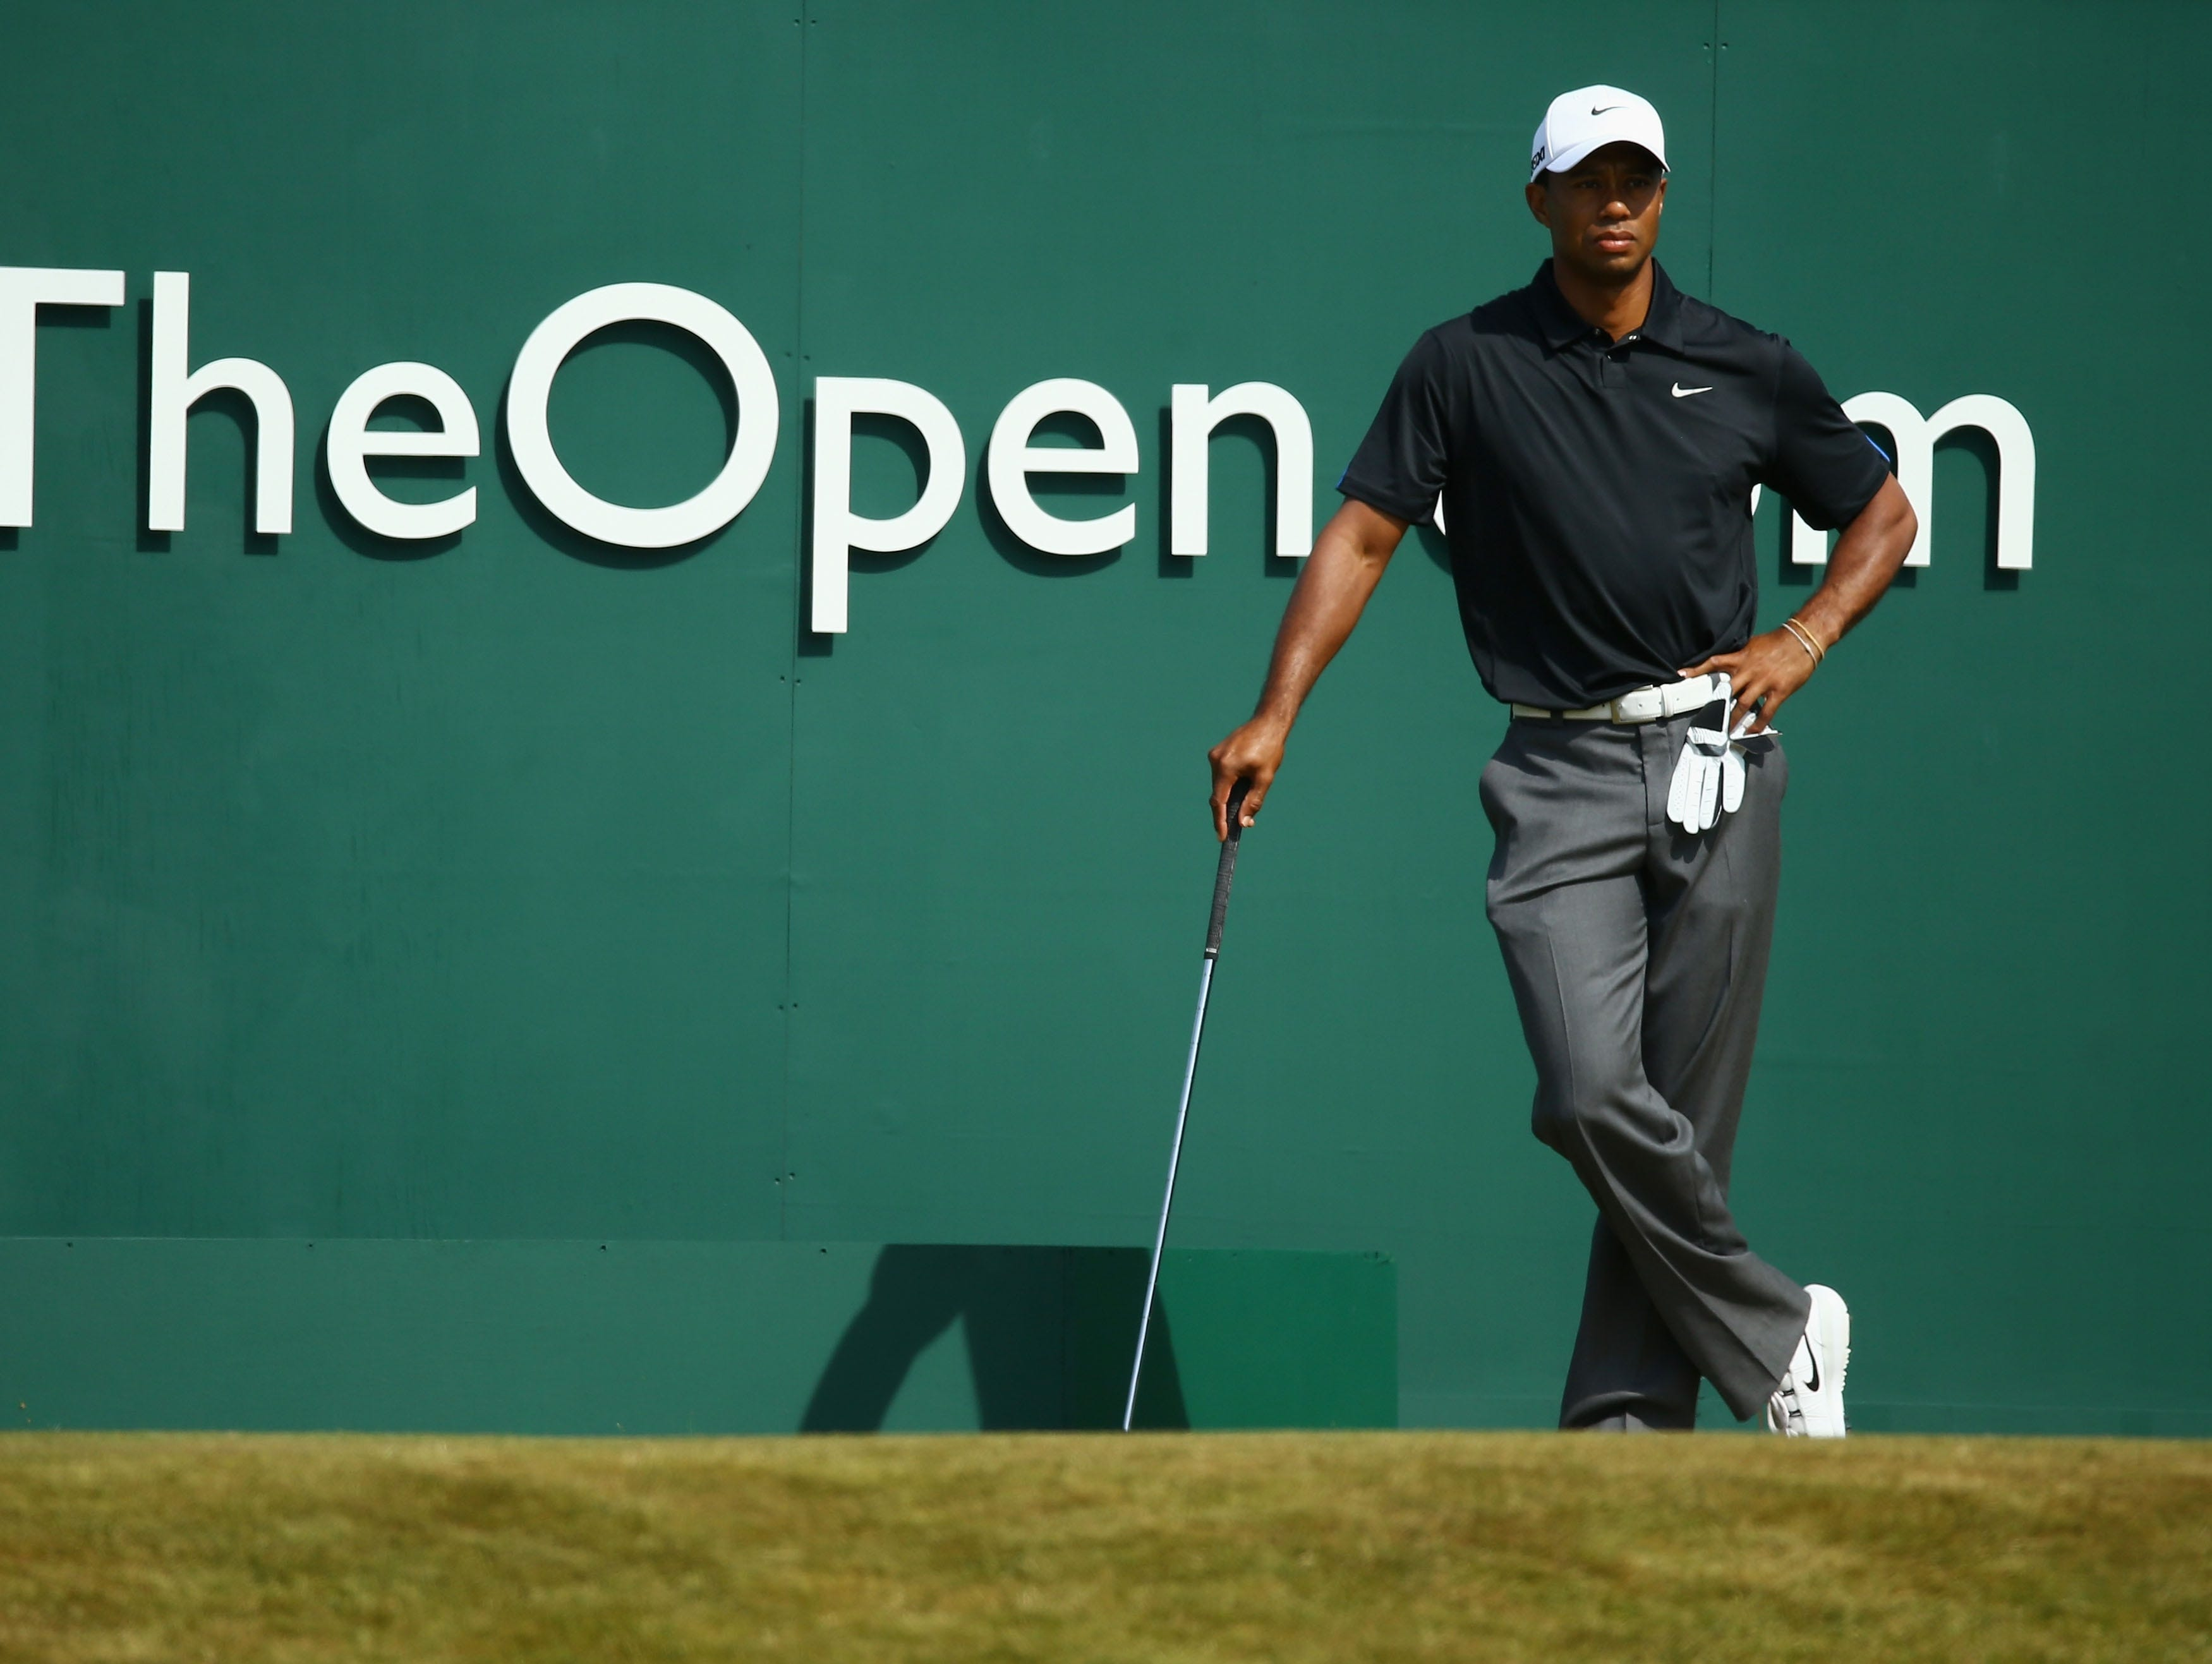 westwood leads  tiger two shots back at british open